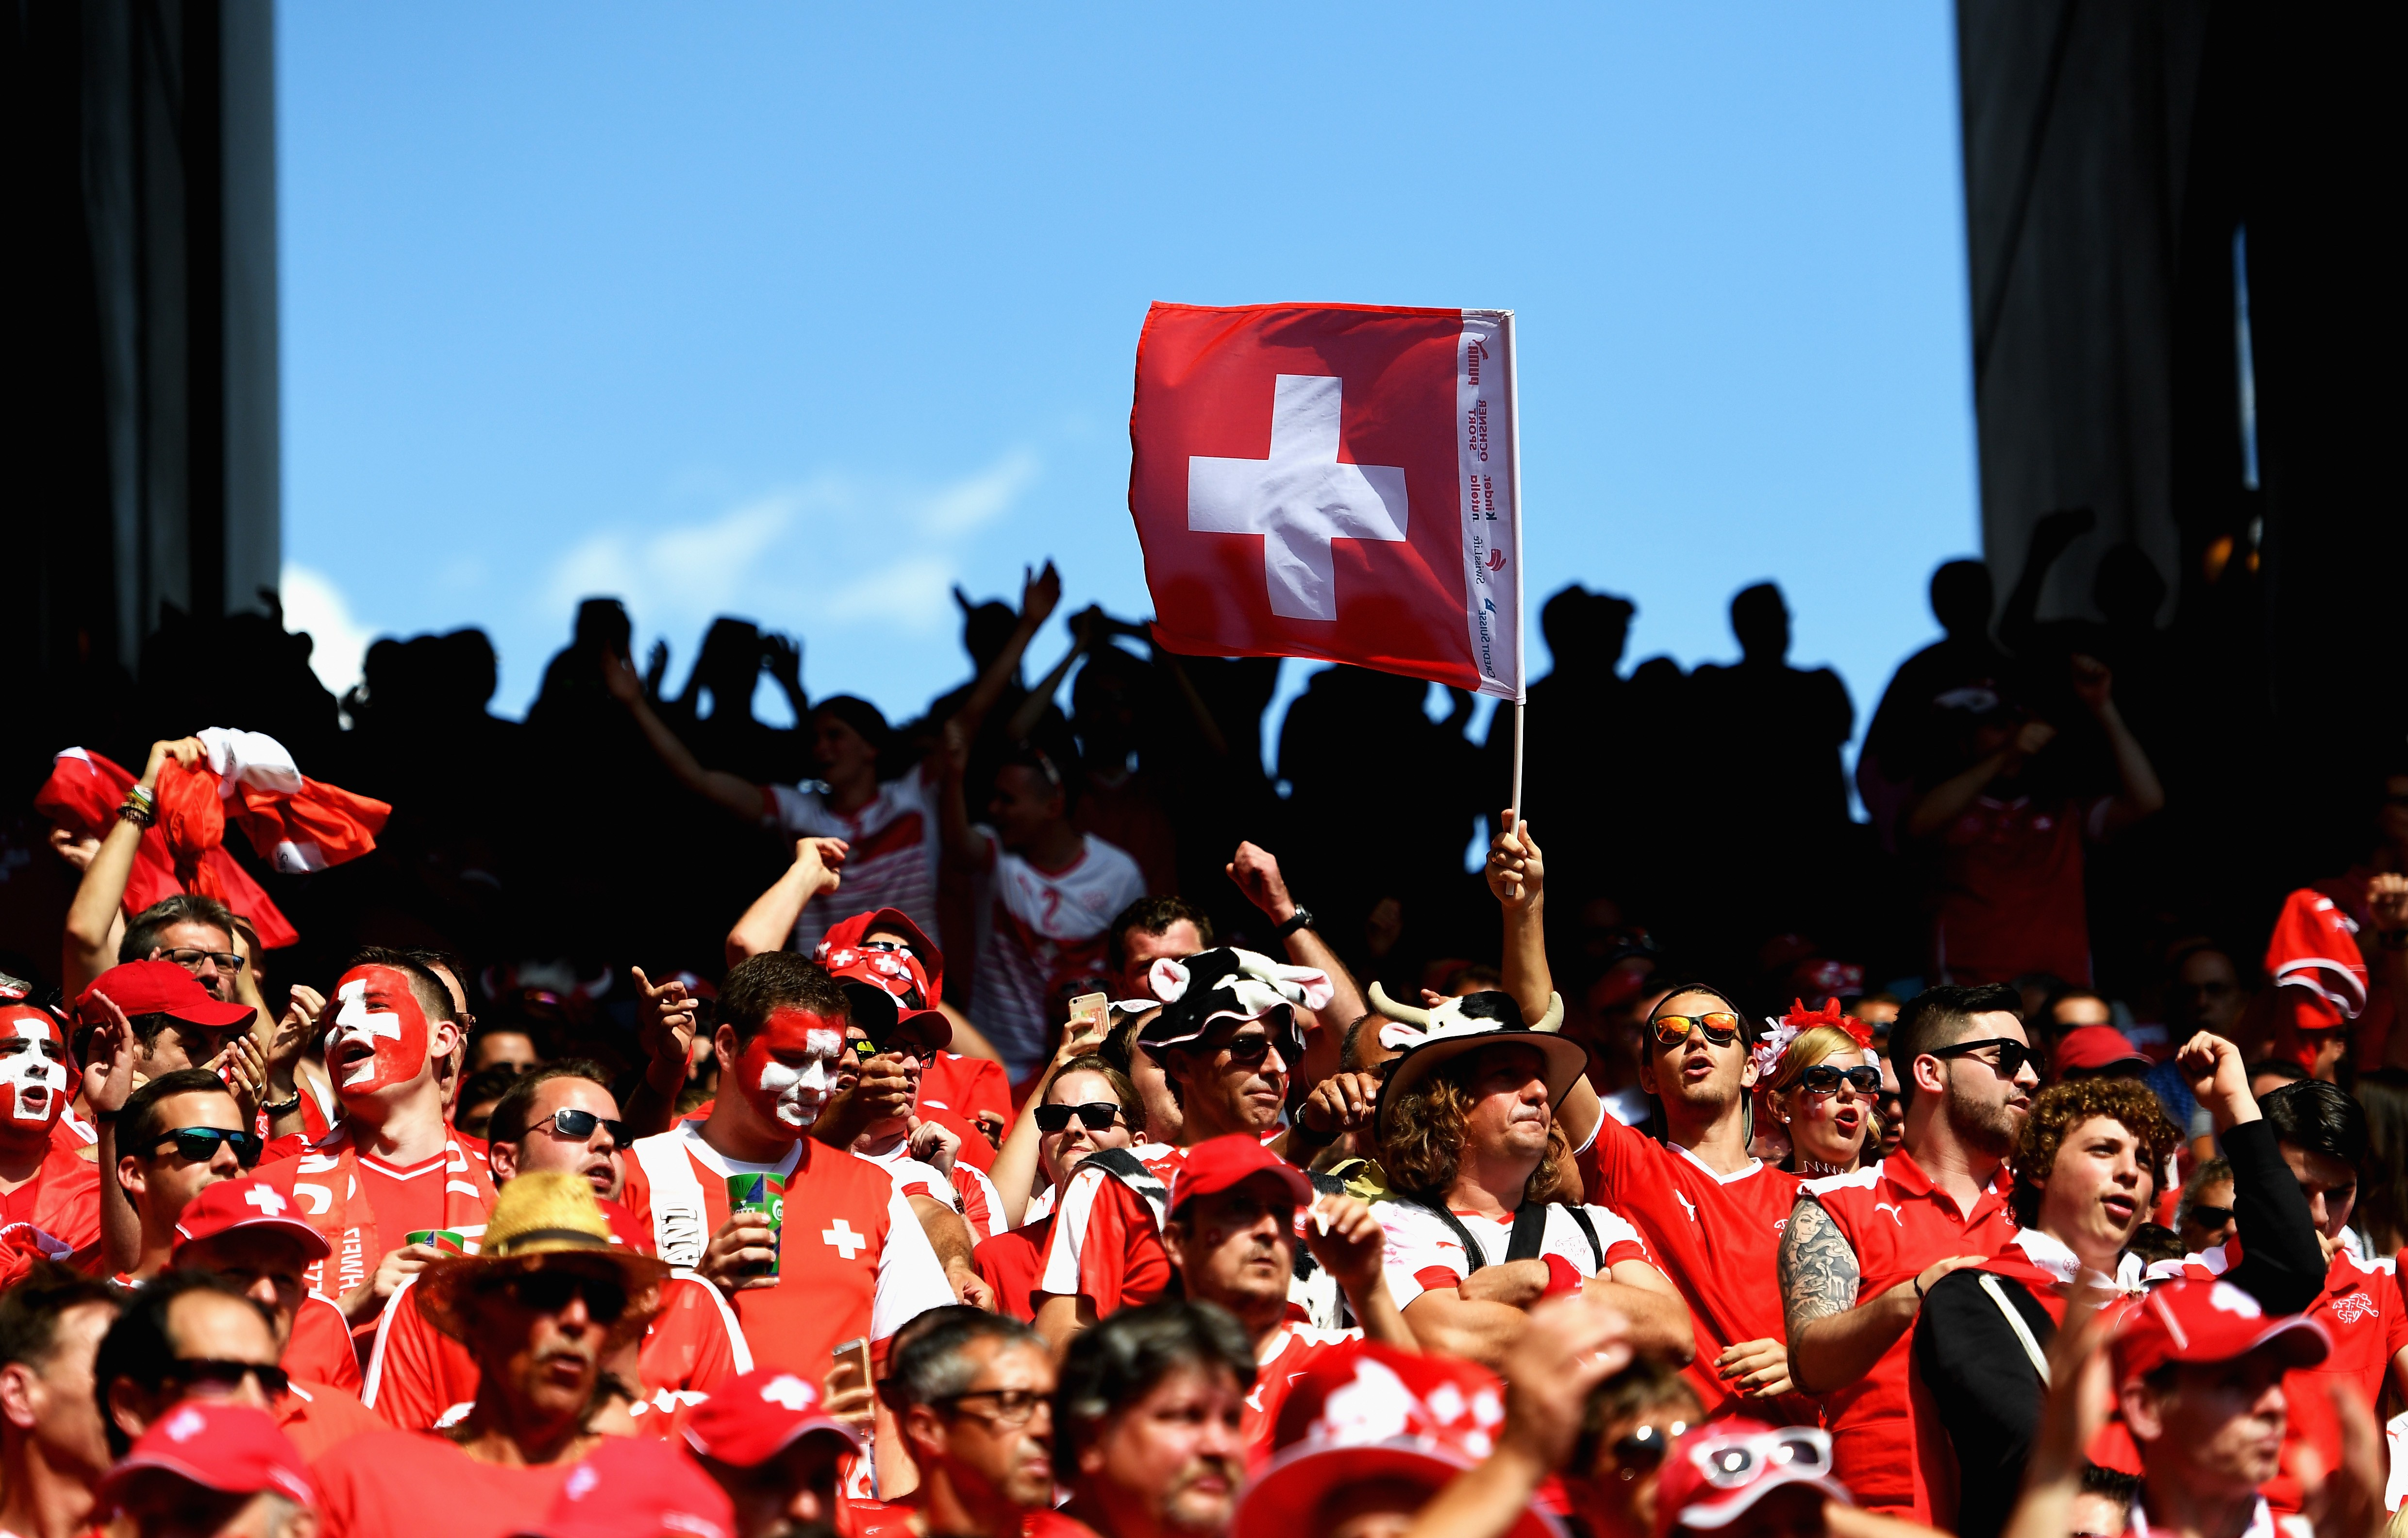 SAINT-ETIENNE, FRANCE - JUNE 25: Switzerland supporters cheer during the UEFA EURO 2016 round of 16 match between Switzerland and Poland at Stade Geoffroy-Guichard on June 25, 2016 in Saint-Etienne, France.  (Photo by Laurence Griffiths/Getty Images)